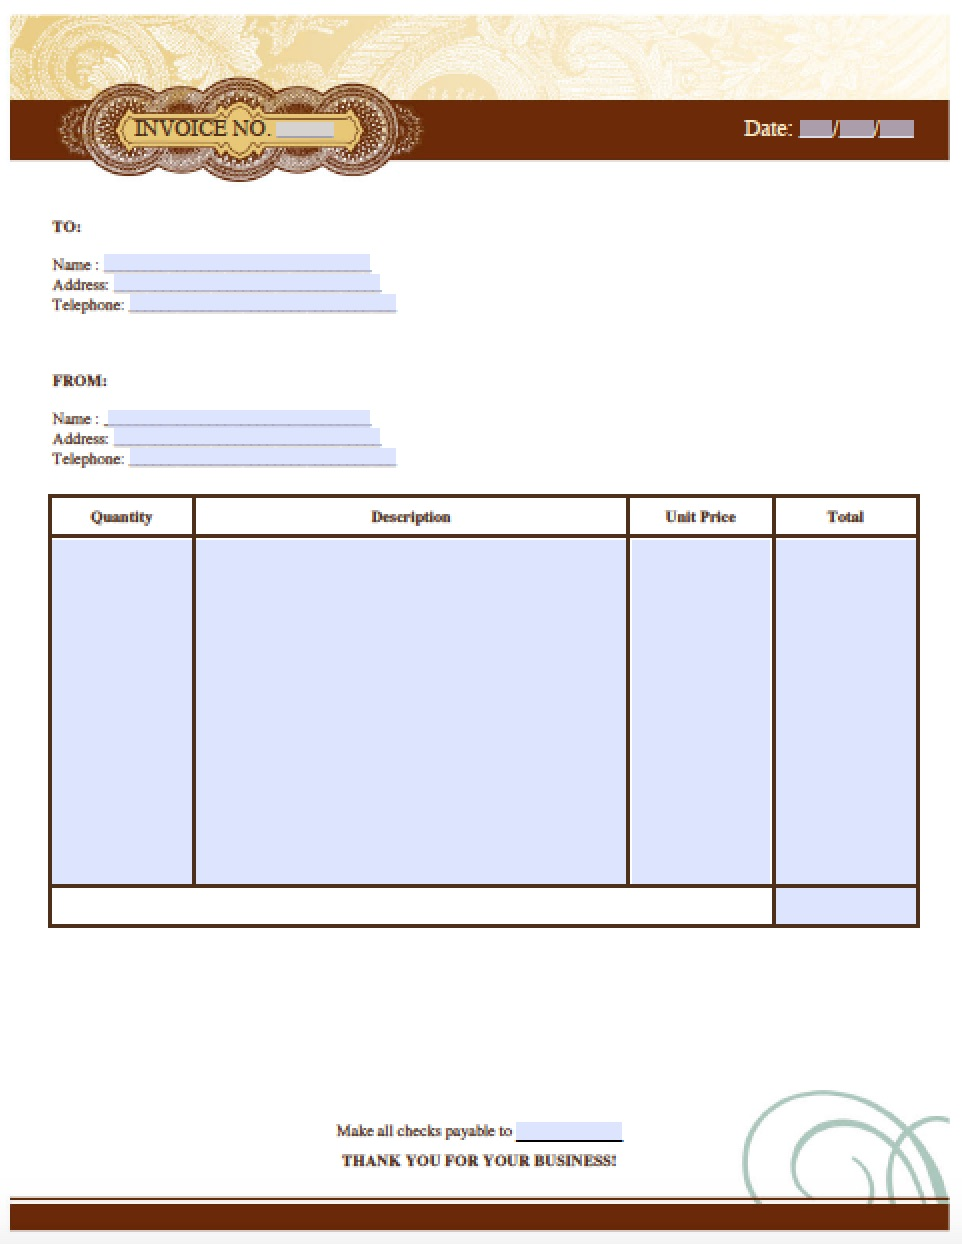 Free Artist Invoice Template Excel PDF Word Doc - Commission invoice format for service business